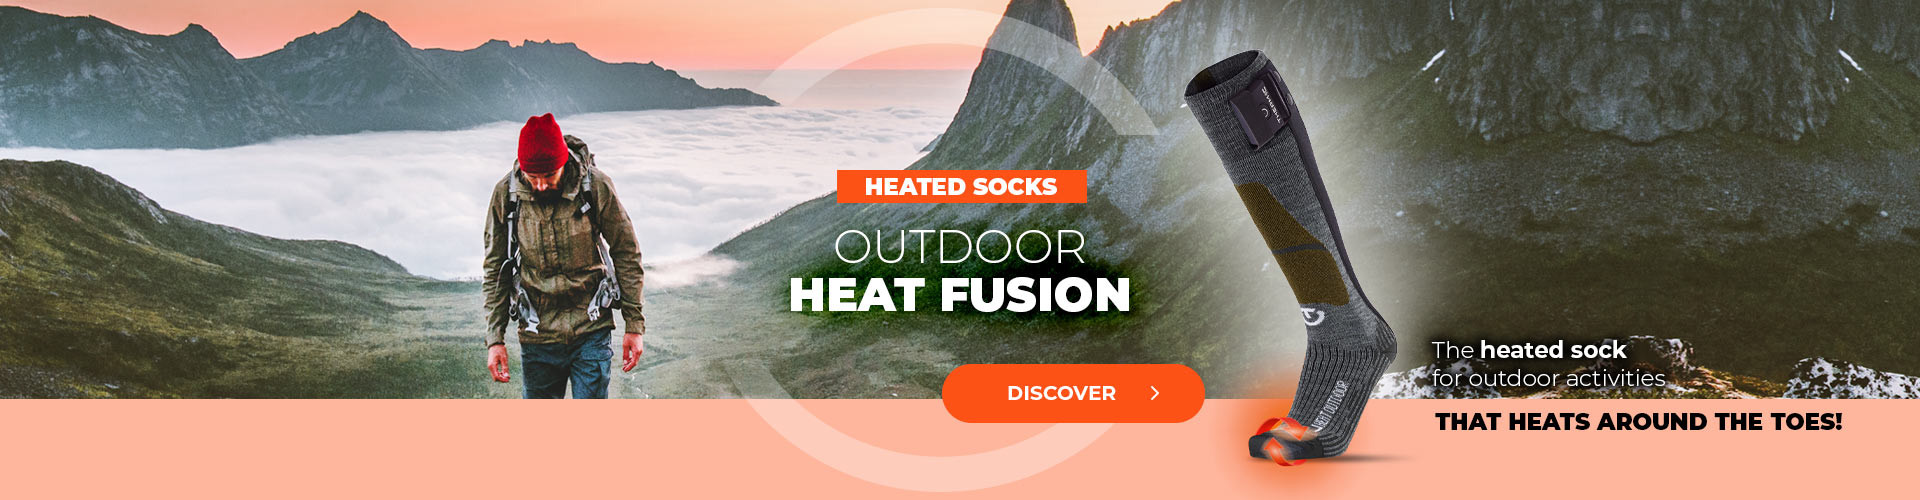 Discover the forst heated sock for outdoor activities who heat all around the toes!